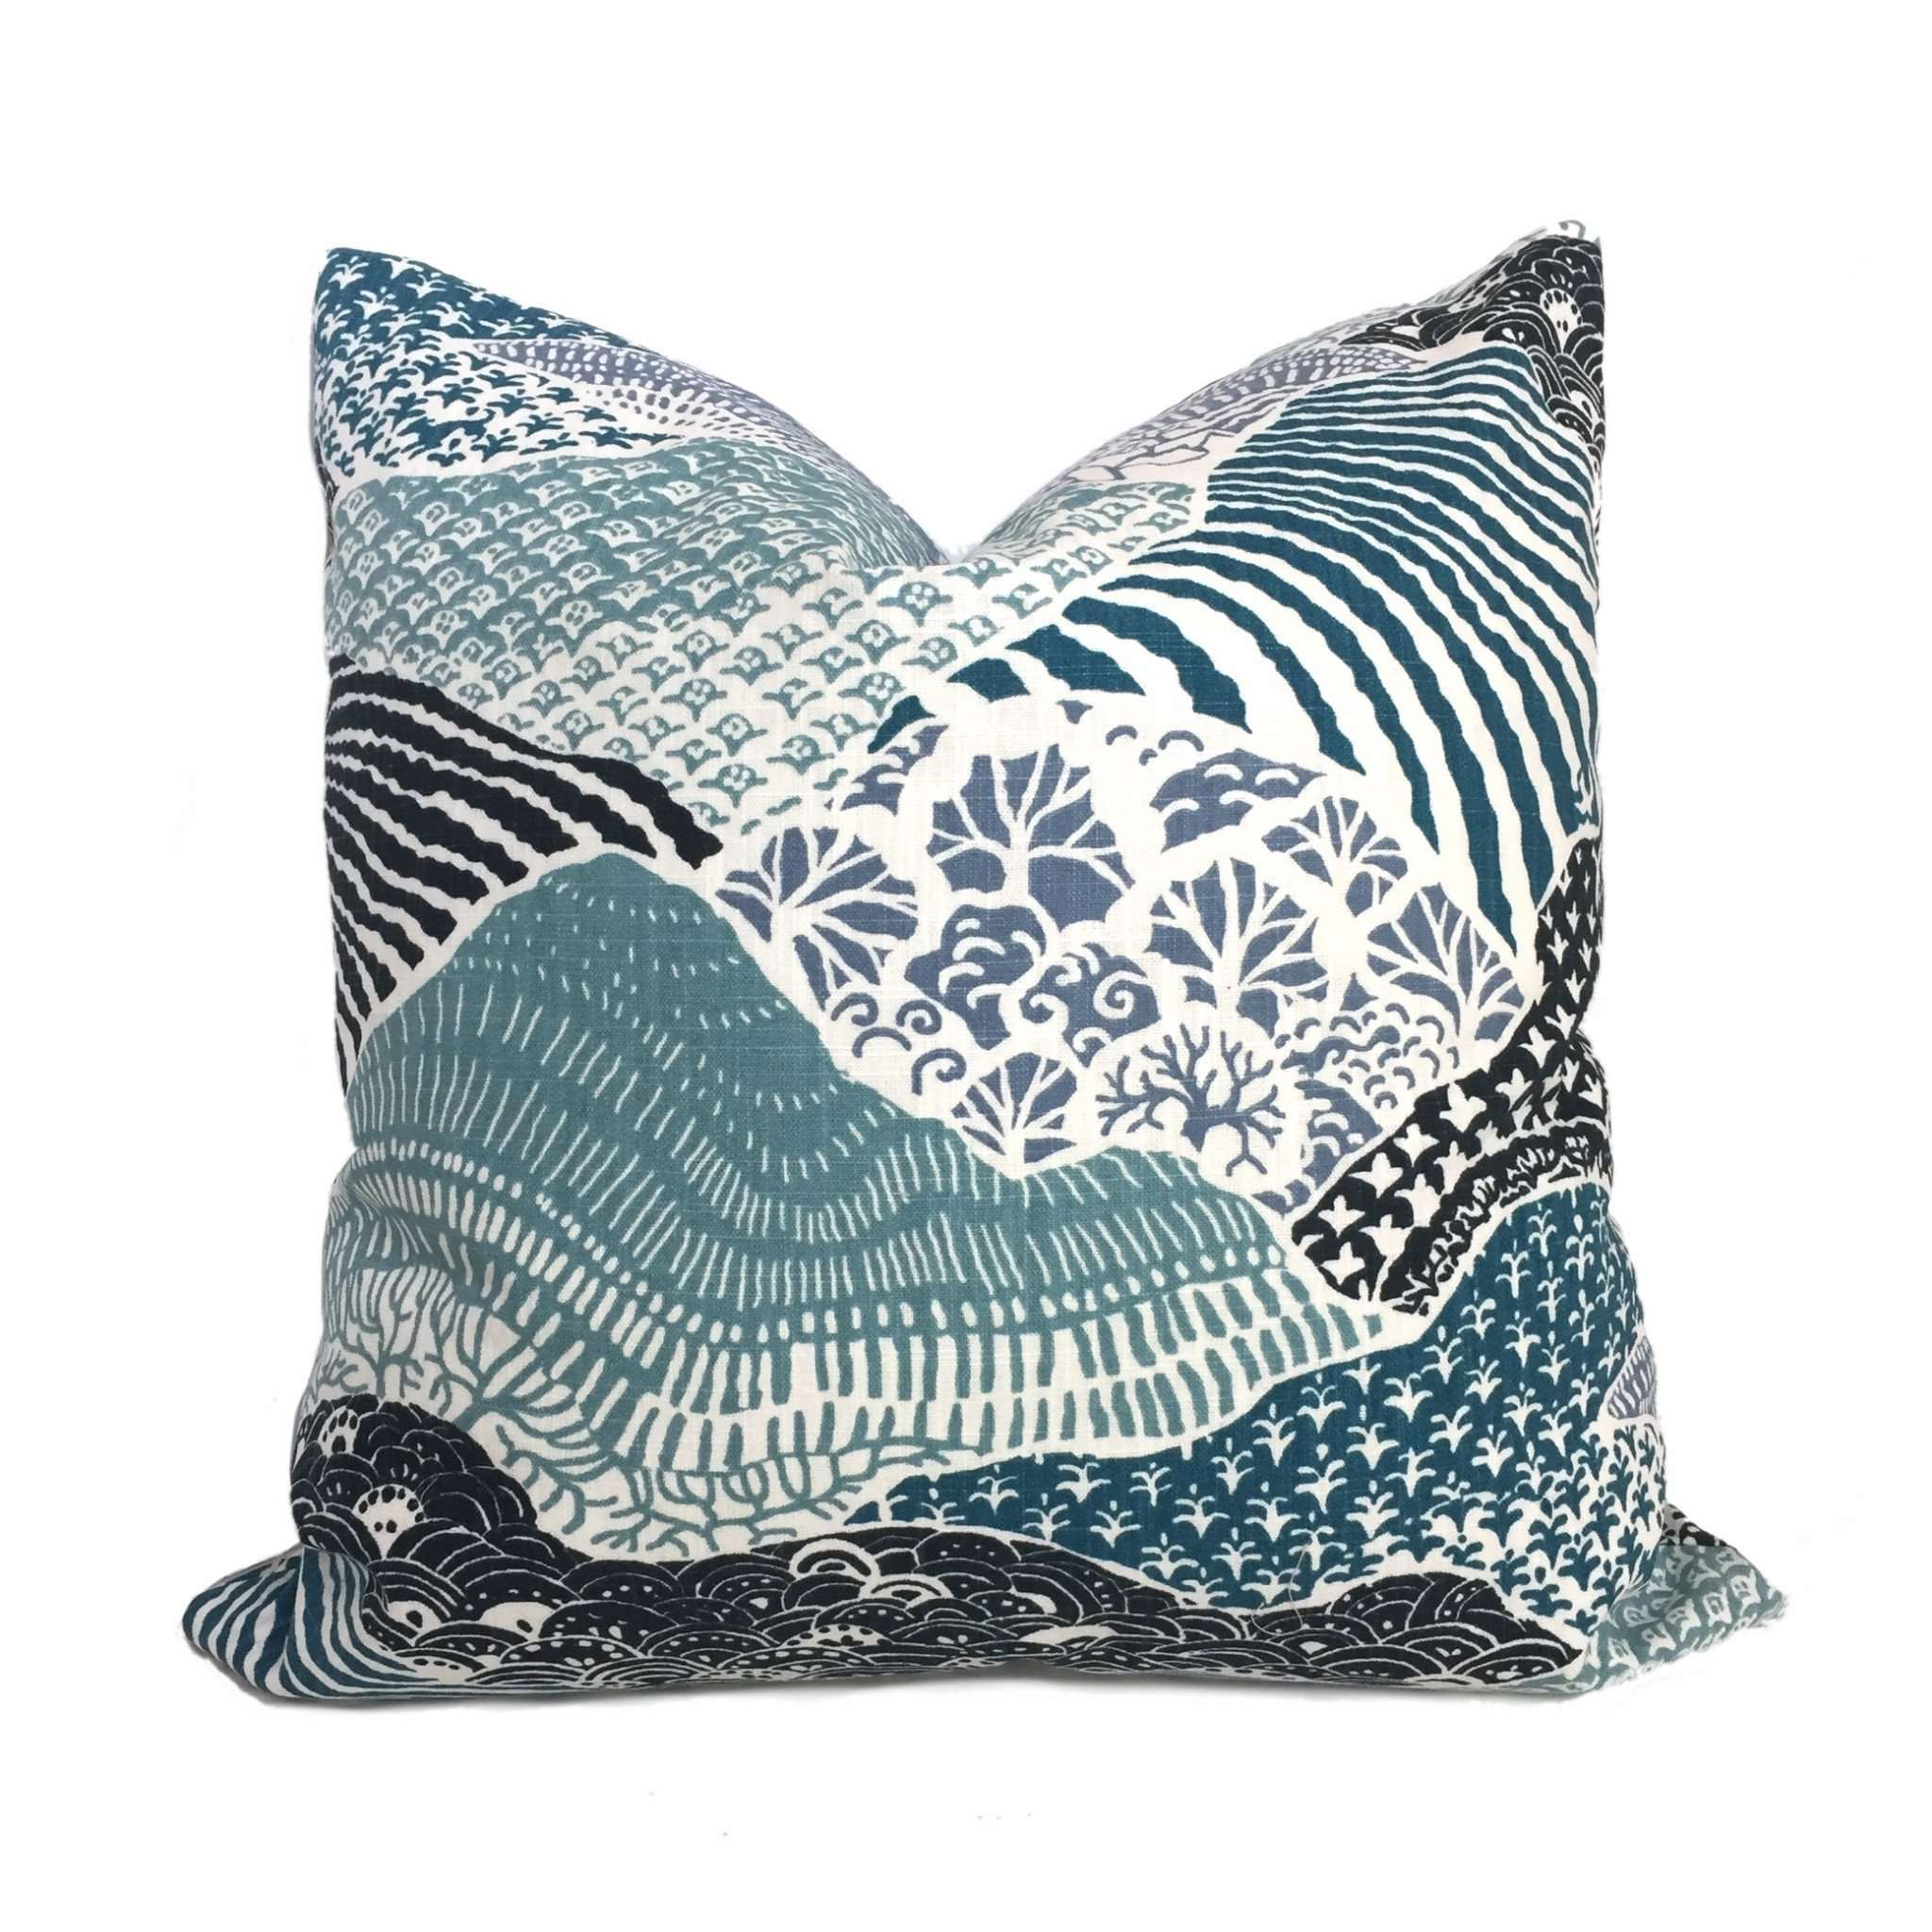 Robert Allen Madcap Cottage Windsor Park Blue Teal White Pillow Cover Cushion Pillow Case Euro Sham 16x16 18x18 20x20 22x22 24x24 26x26 28x28 Lumbar Pillow 12x18 12x20 12x24 14x20 16x26 by Aloriam